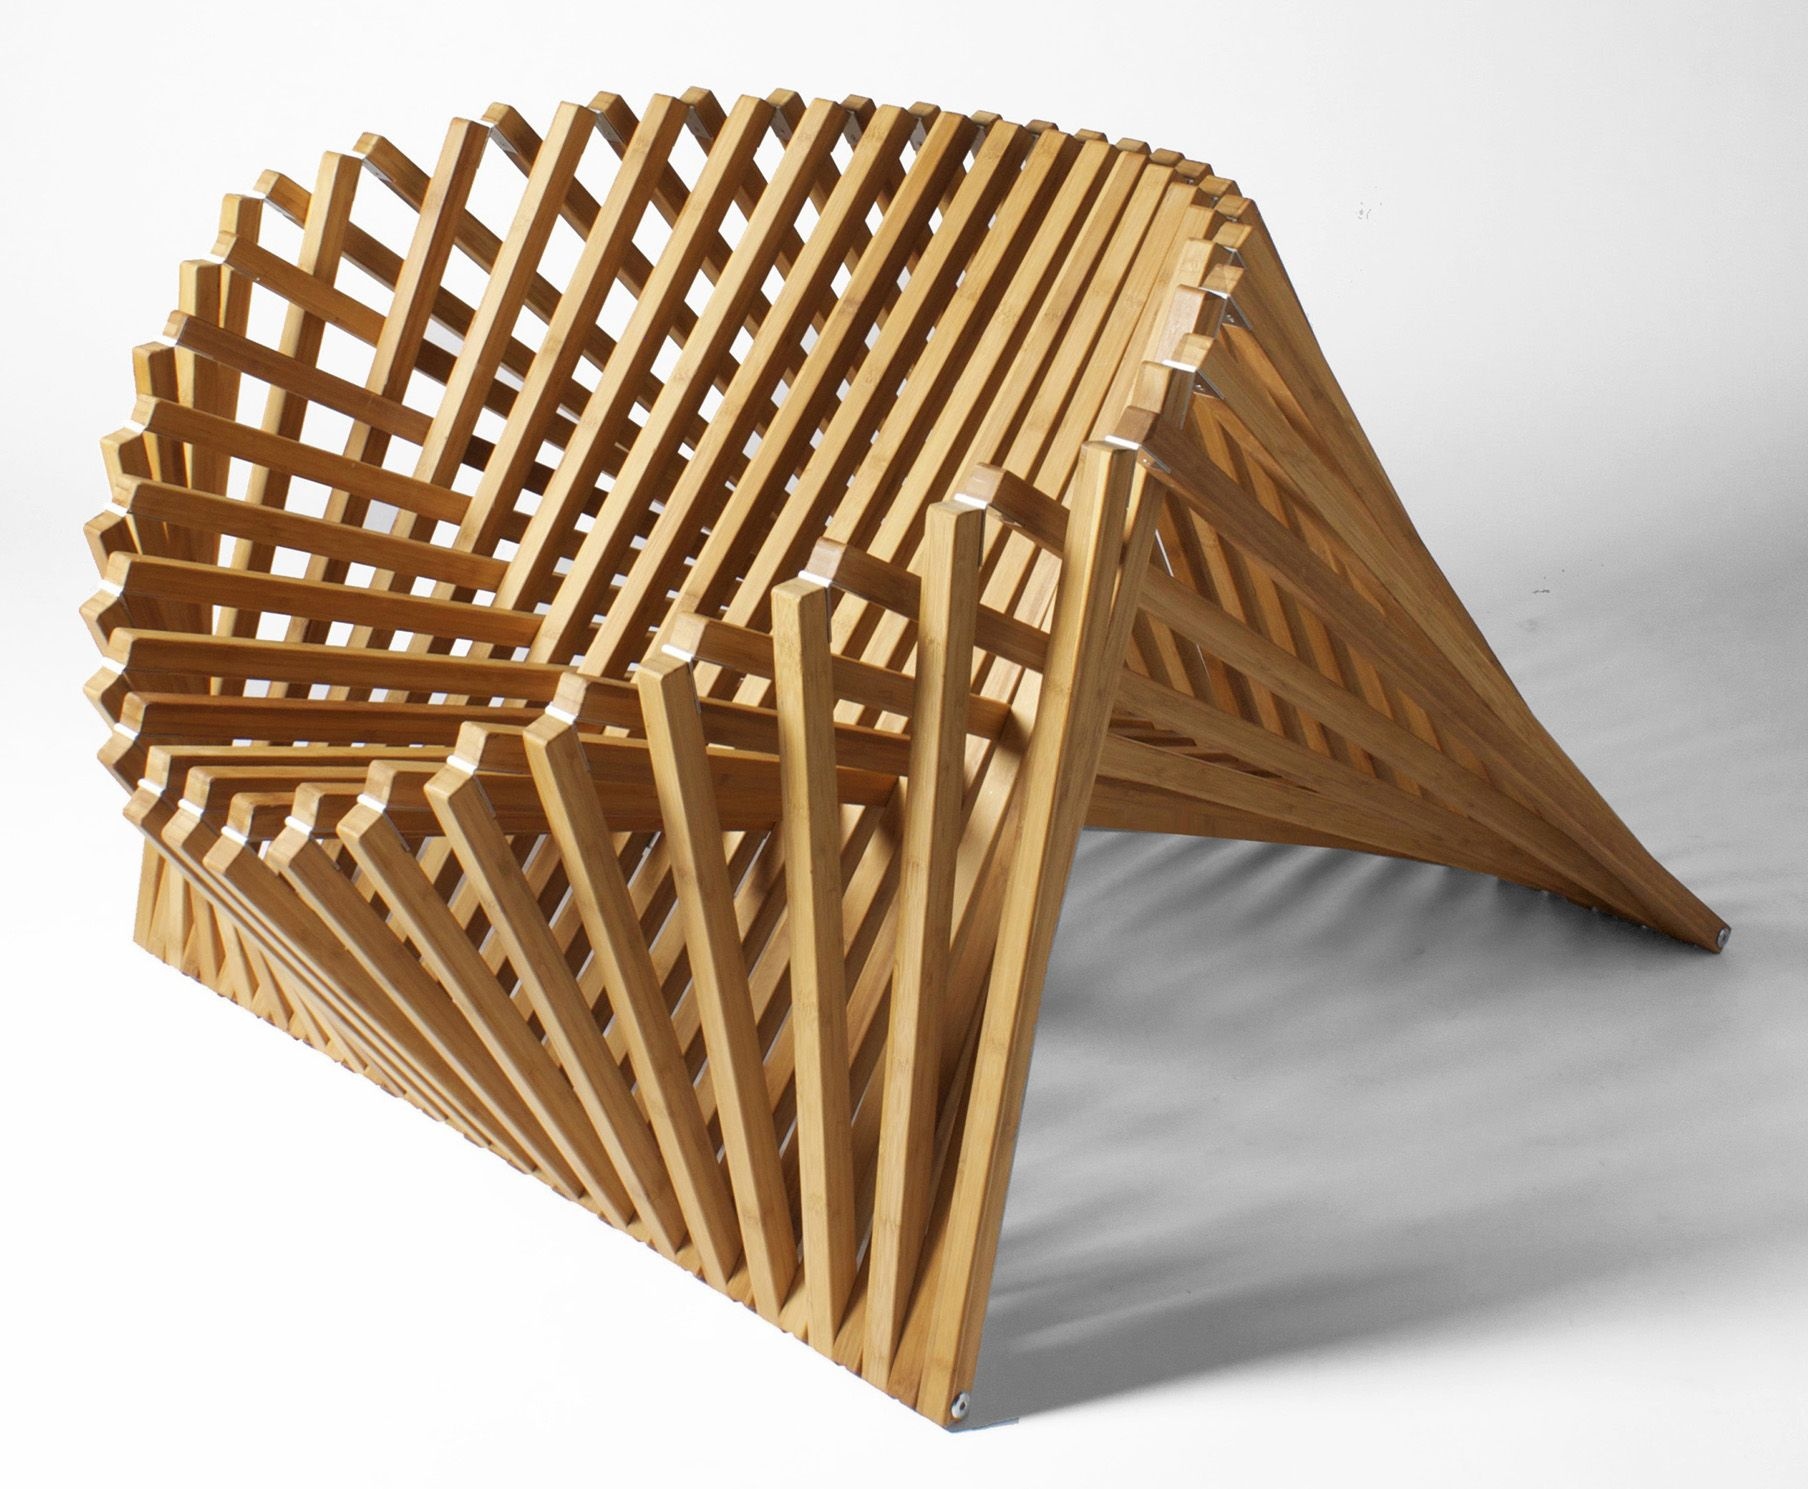 Intricate Yet Functional, The Rising Chair Emphasizes The Natural Shape